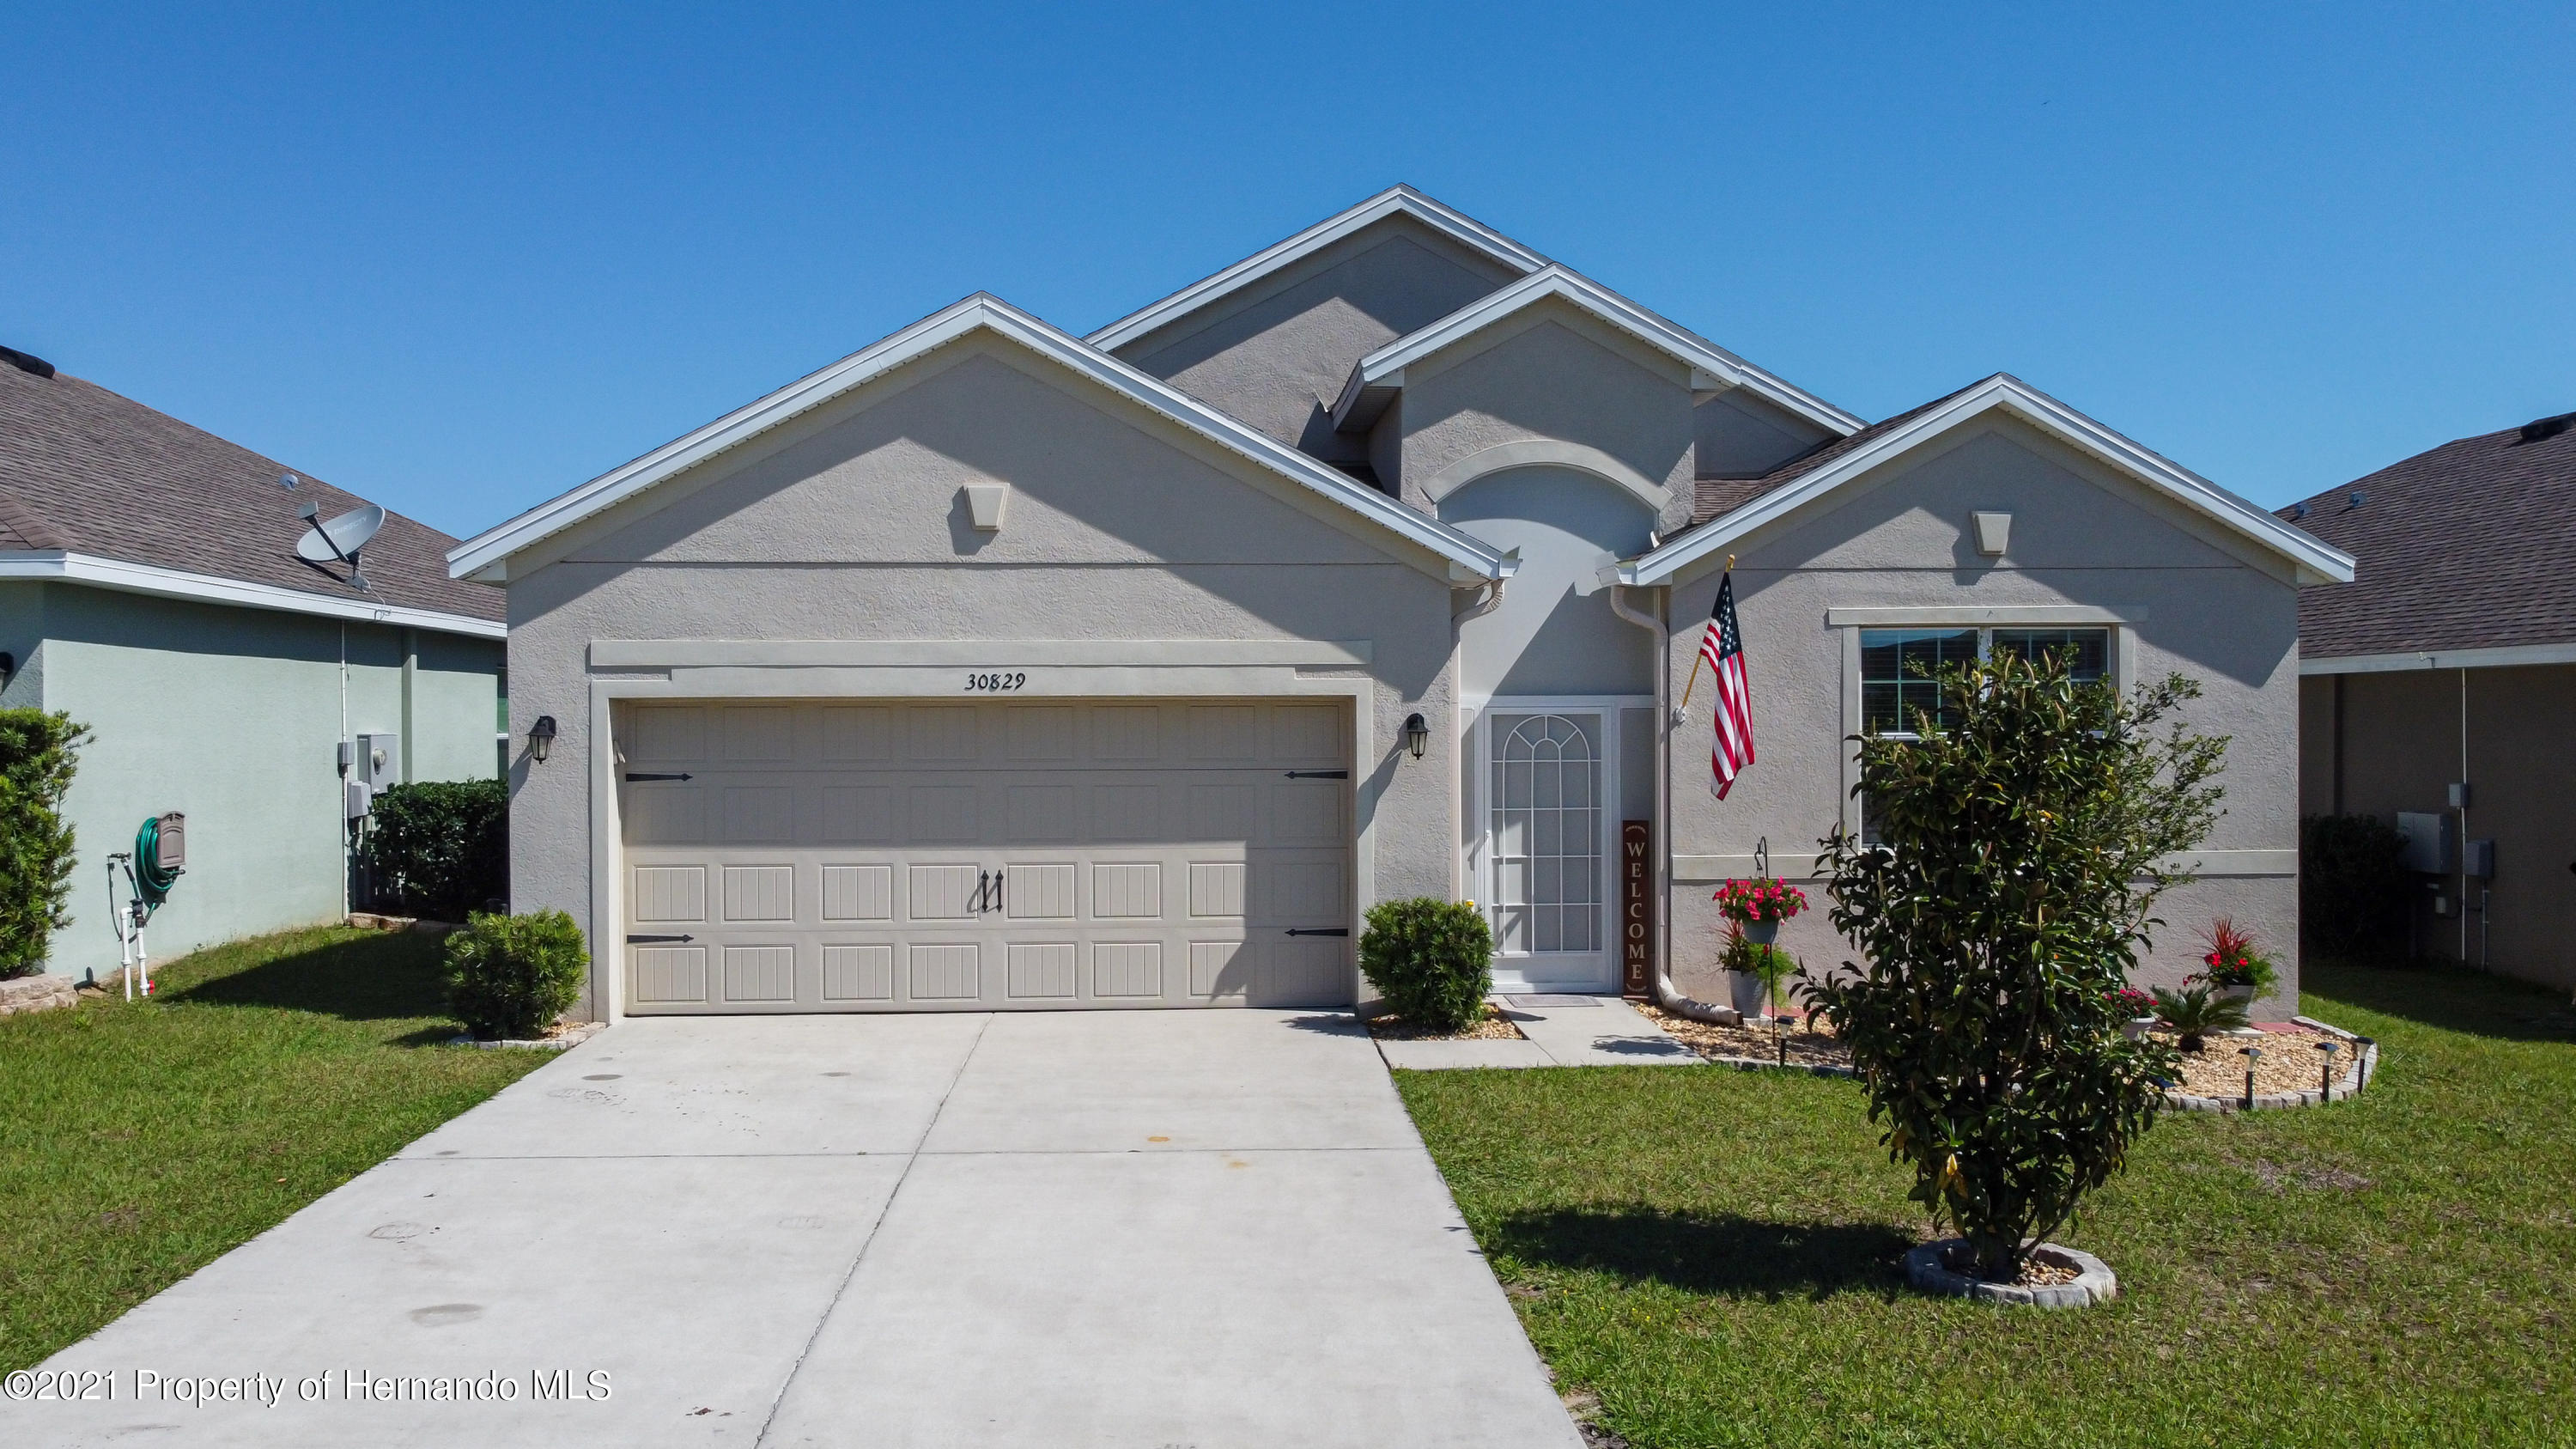 Details for 30829 Water Lily Drive, Brooksville, FL 34602